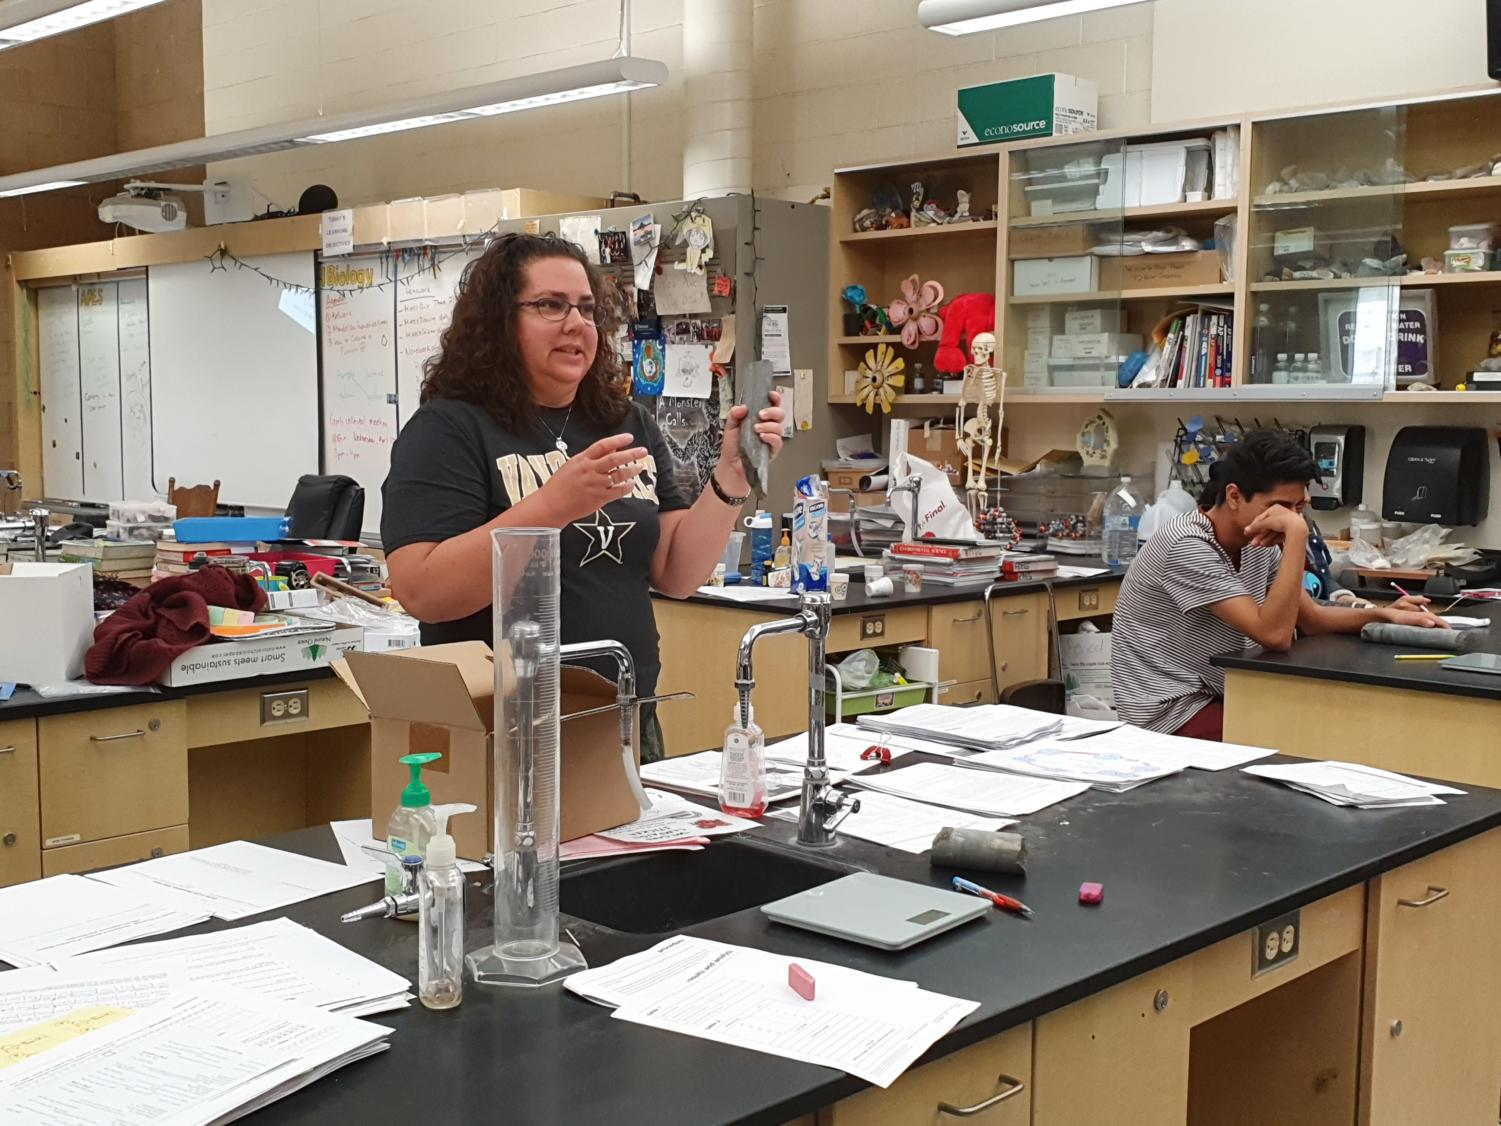 Jill Lytle, AP Environmental and Biology teacher, reviewing the density of rock levels. Photo taken on March 27 at 10:20 a.m.